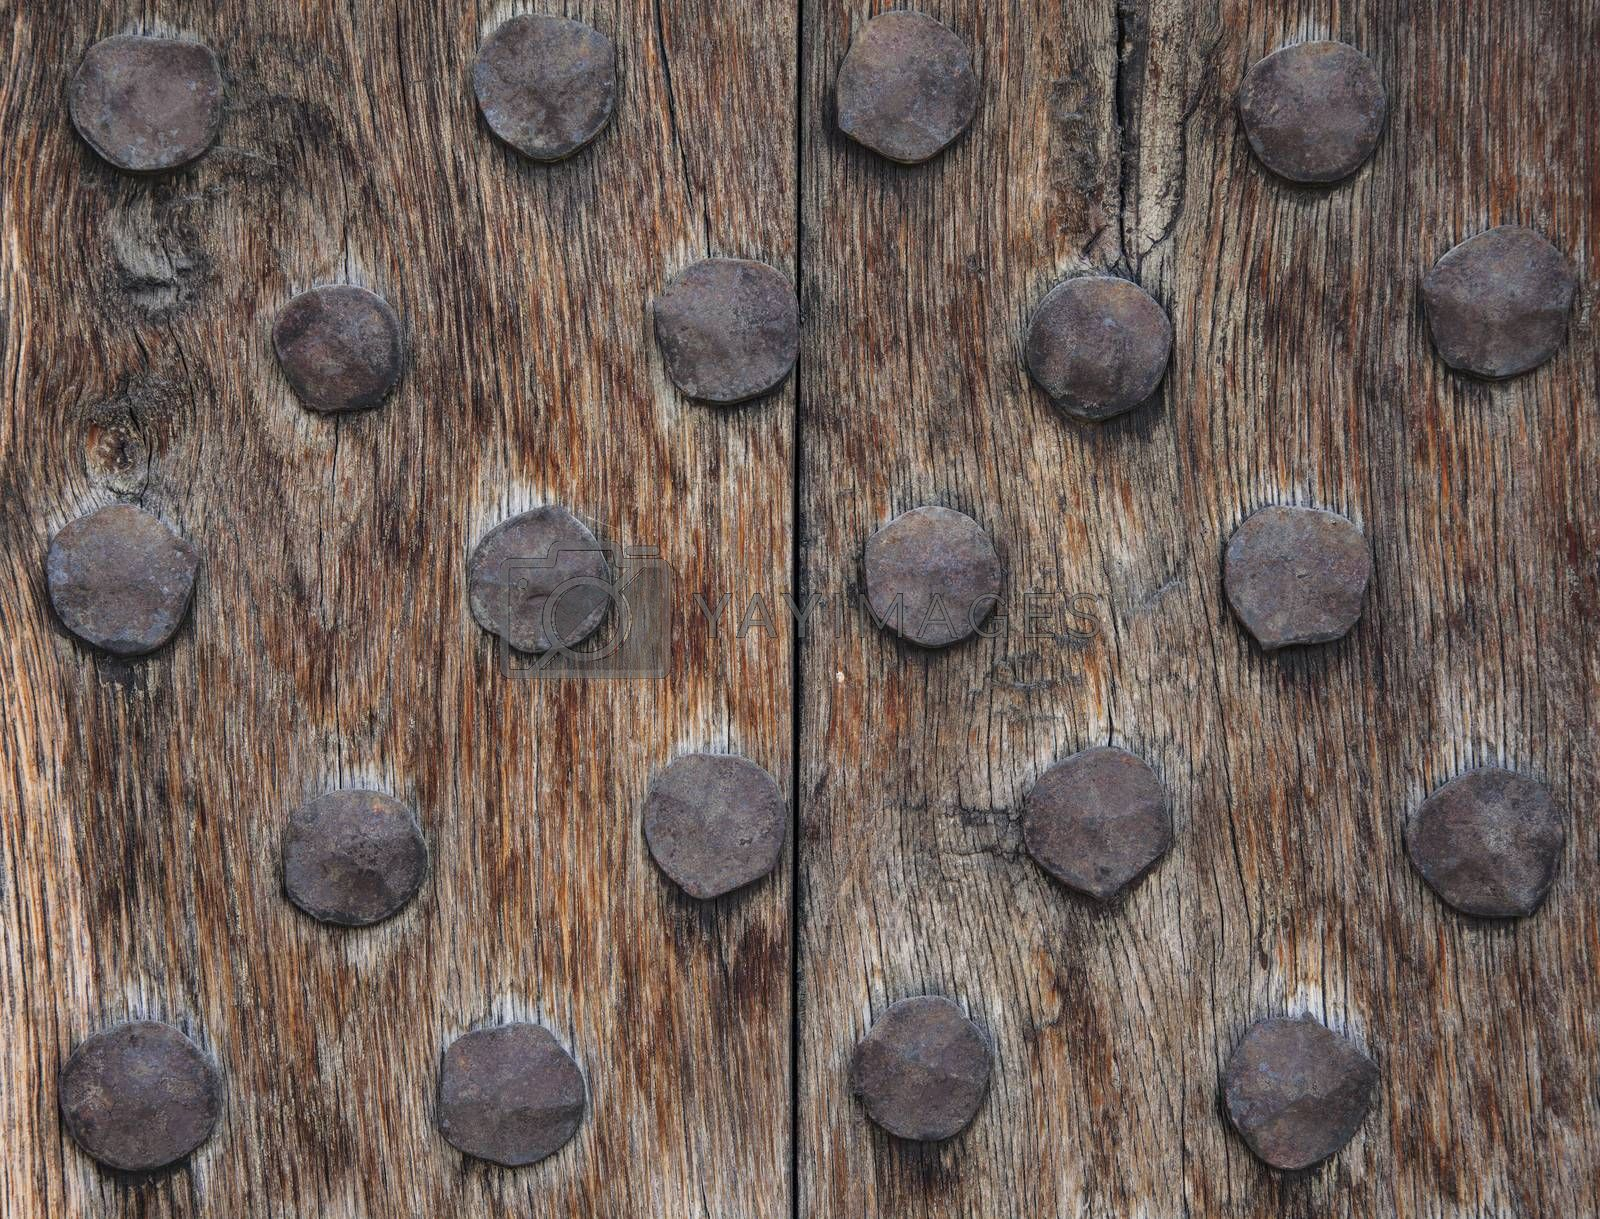 An old and rough wood surface with rusty metal round nails.